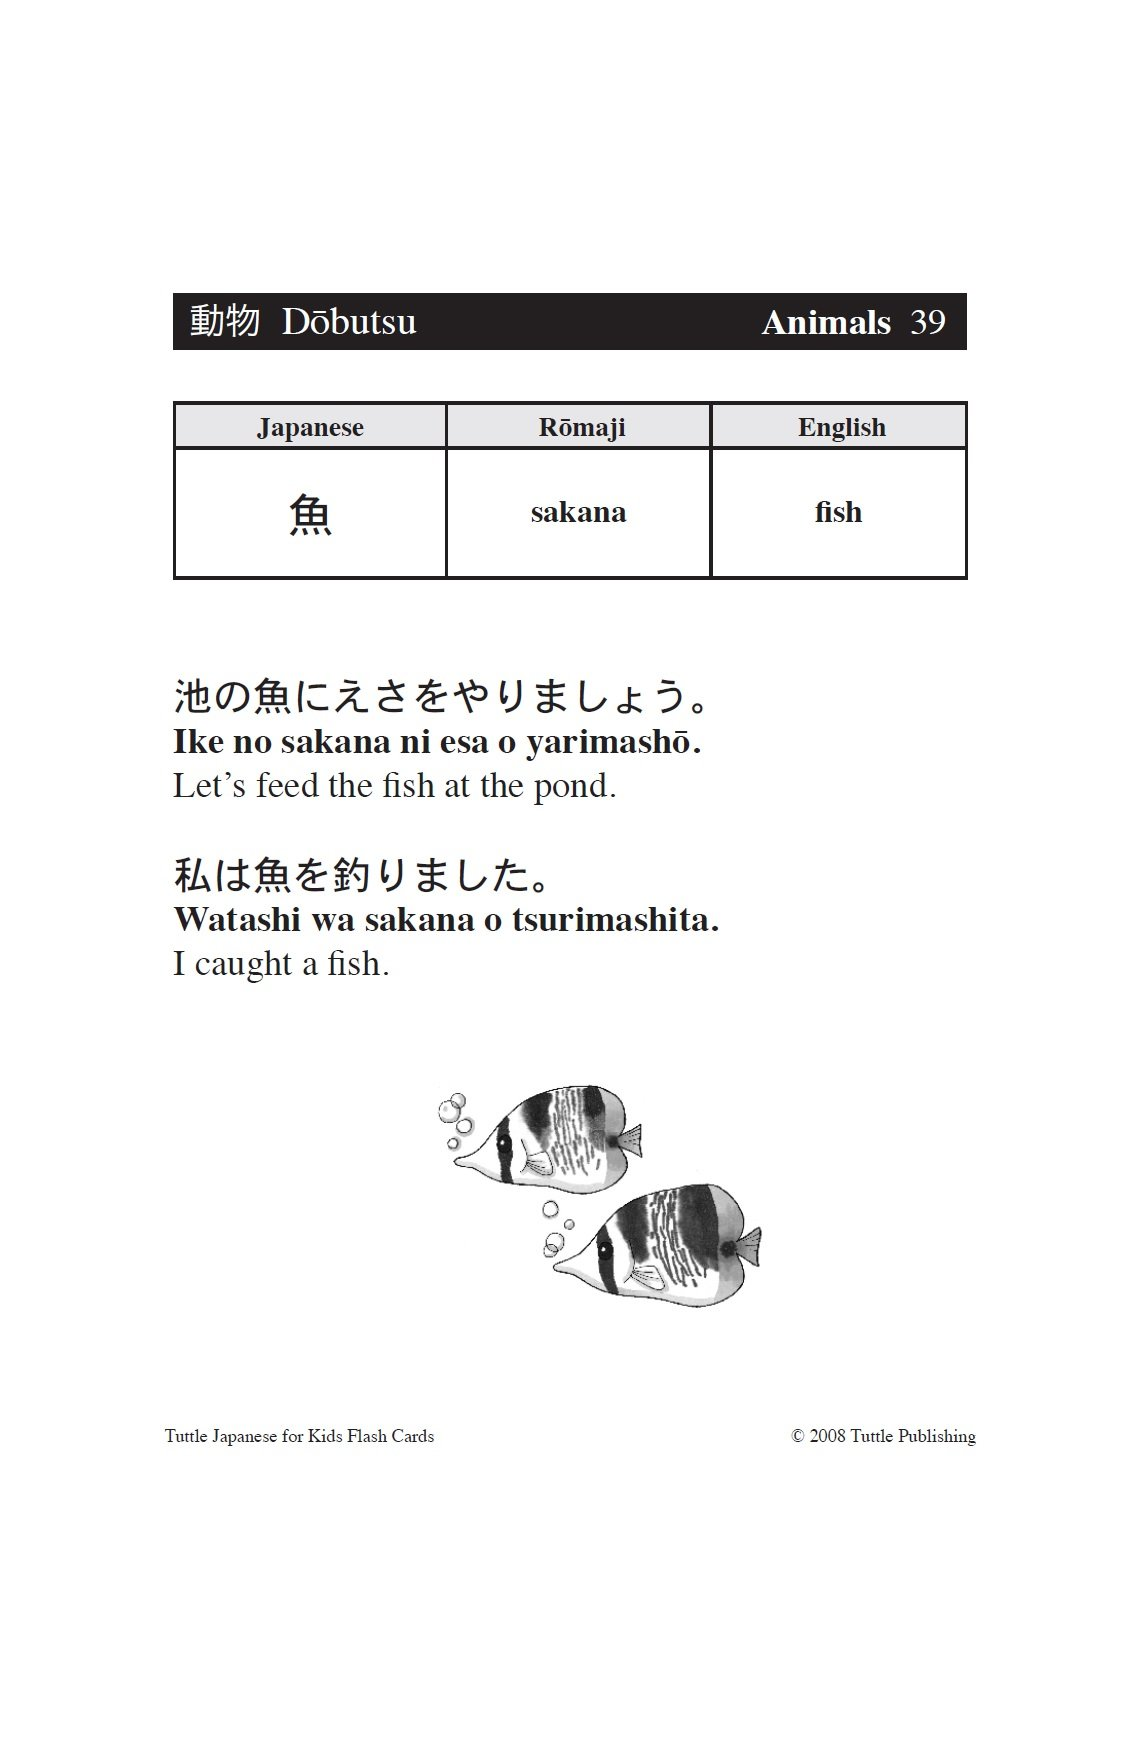 Tuttle japanese for kids flash cards kit includes 64 flash cards tuttle japanese for kids flash cards kit includes 64 flash cards audio cd wall chart learning guide tuttle flash cards timothy g stout biocorpaavc Image collections